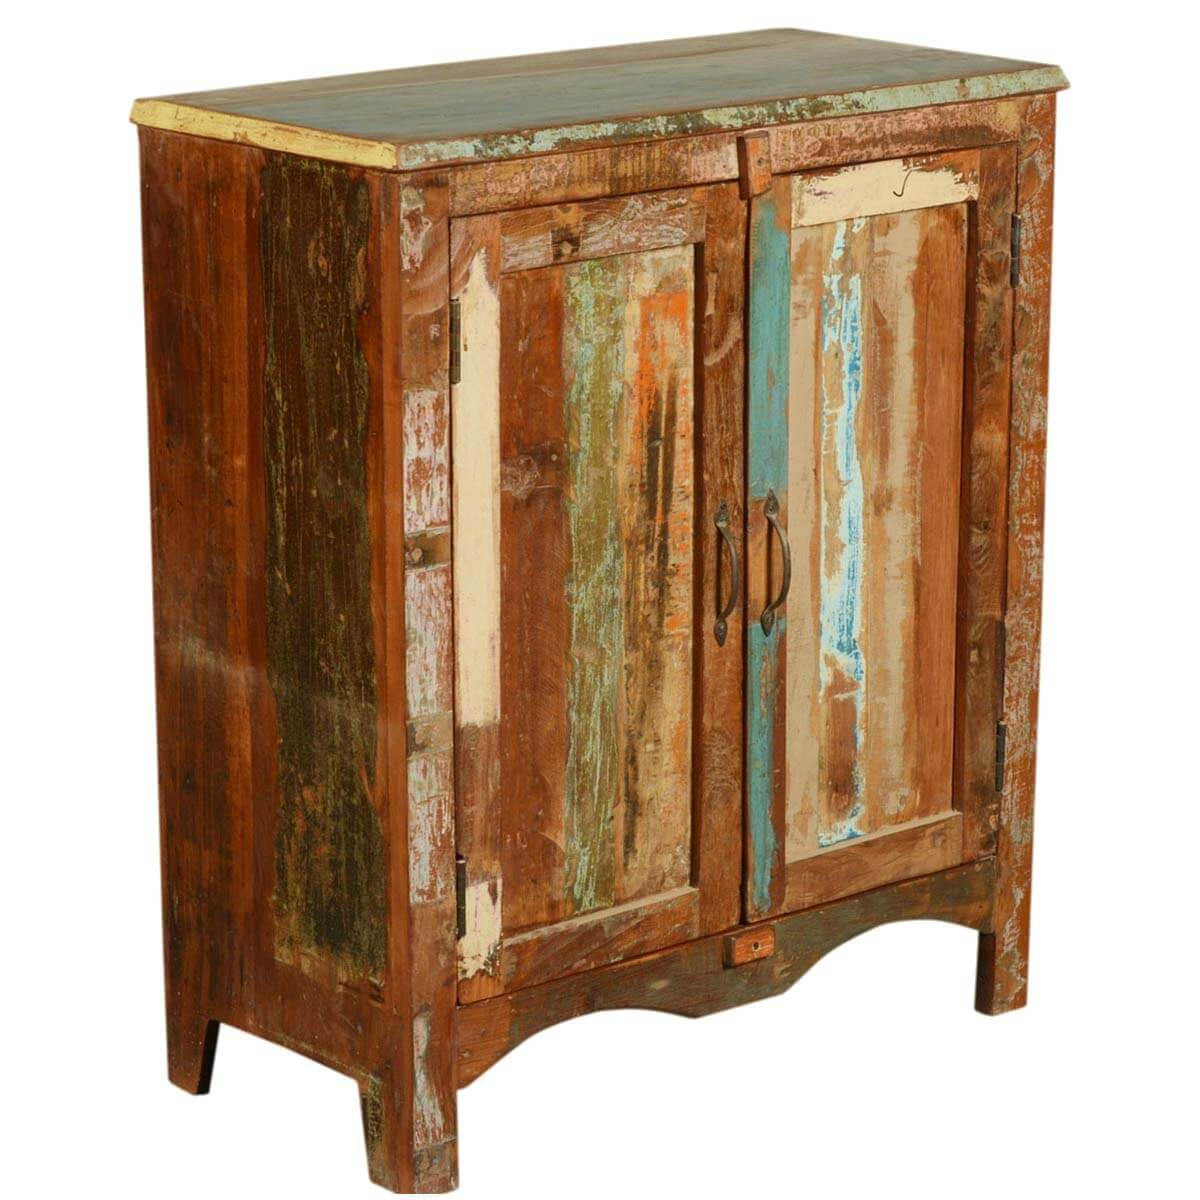 Reclaimed Wood Cabinets ~ Arcadia paint patches rustic reclaimed wood floor cabinet